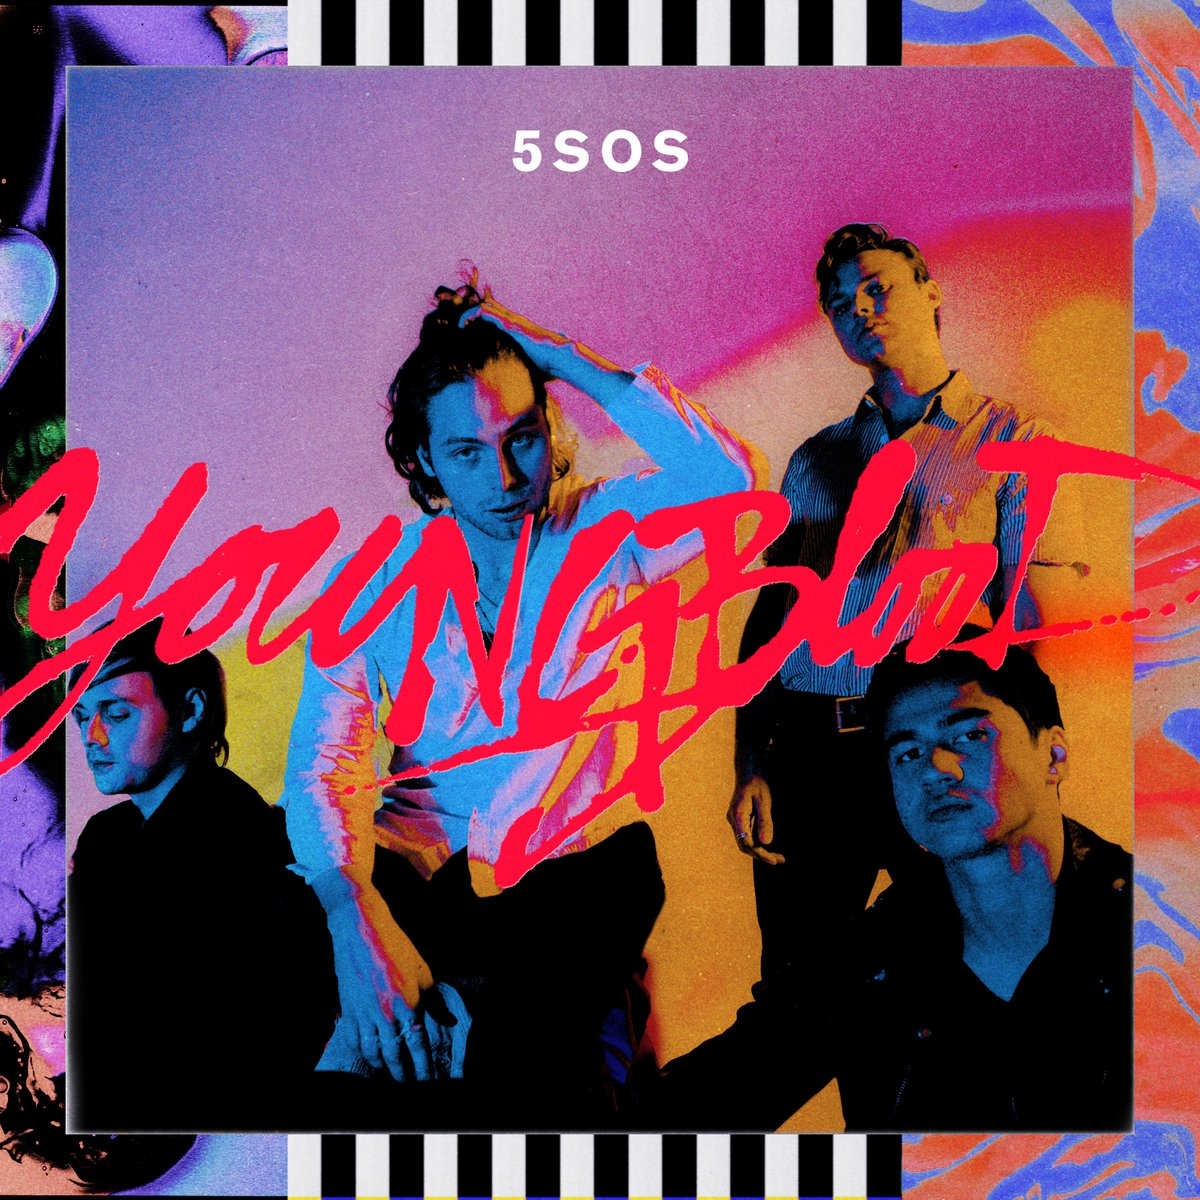 Join our global listening party for Youngblood tomorrow at 12pm LA/ 3pm NY/ 8pm UK/ 5am Aus: https://t.co/reUiCbtb4N